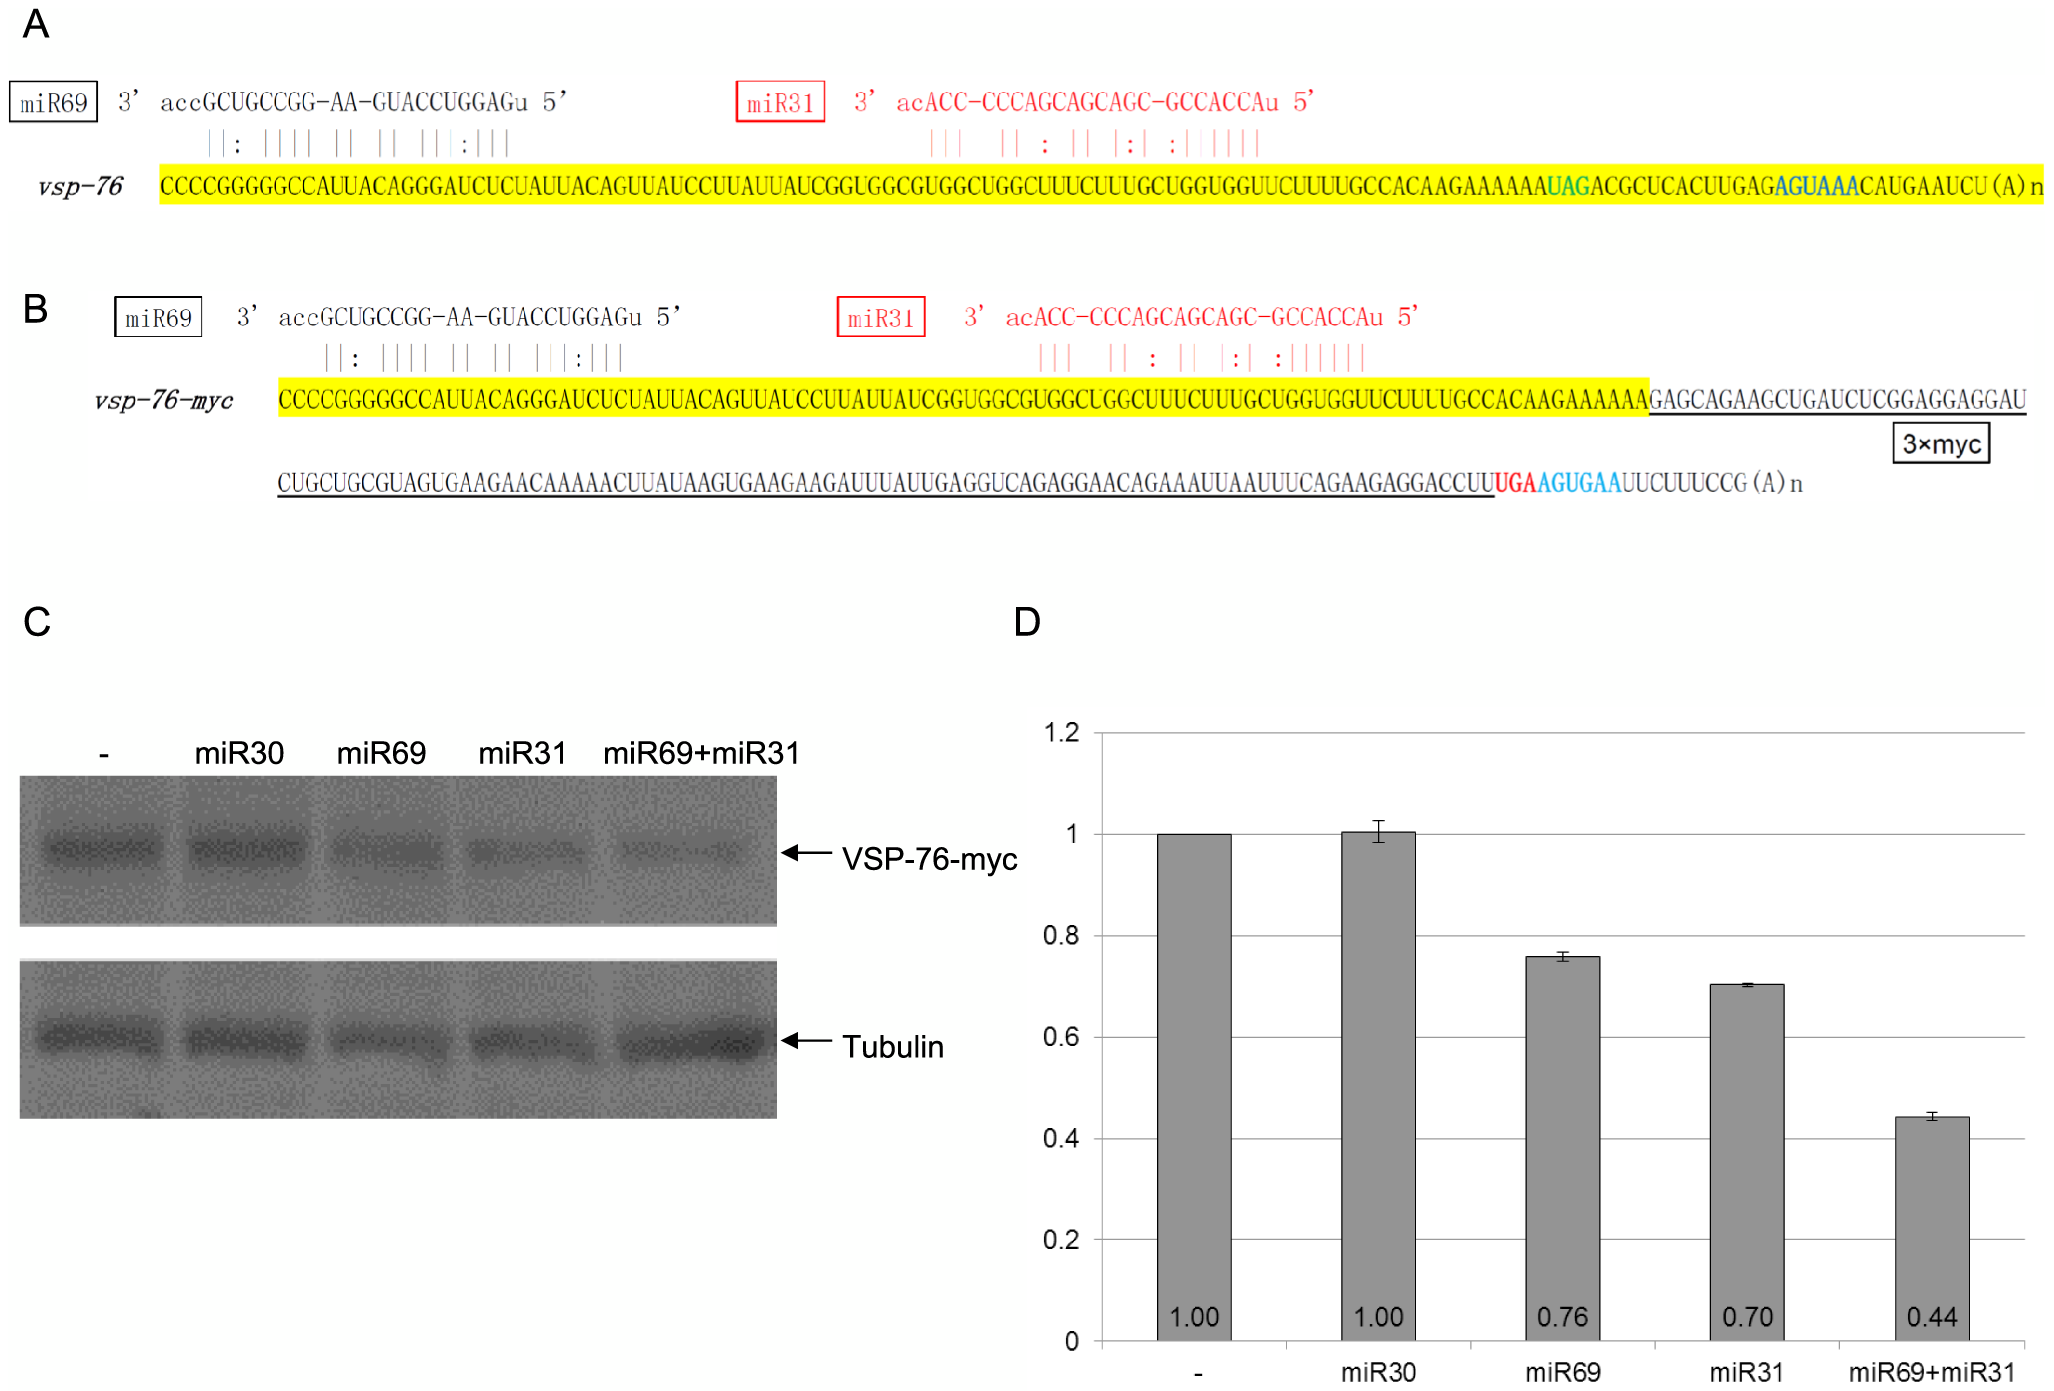 miRNA-mediated regulation of VSP-76 expression.